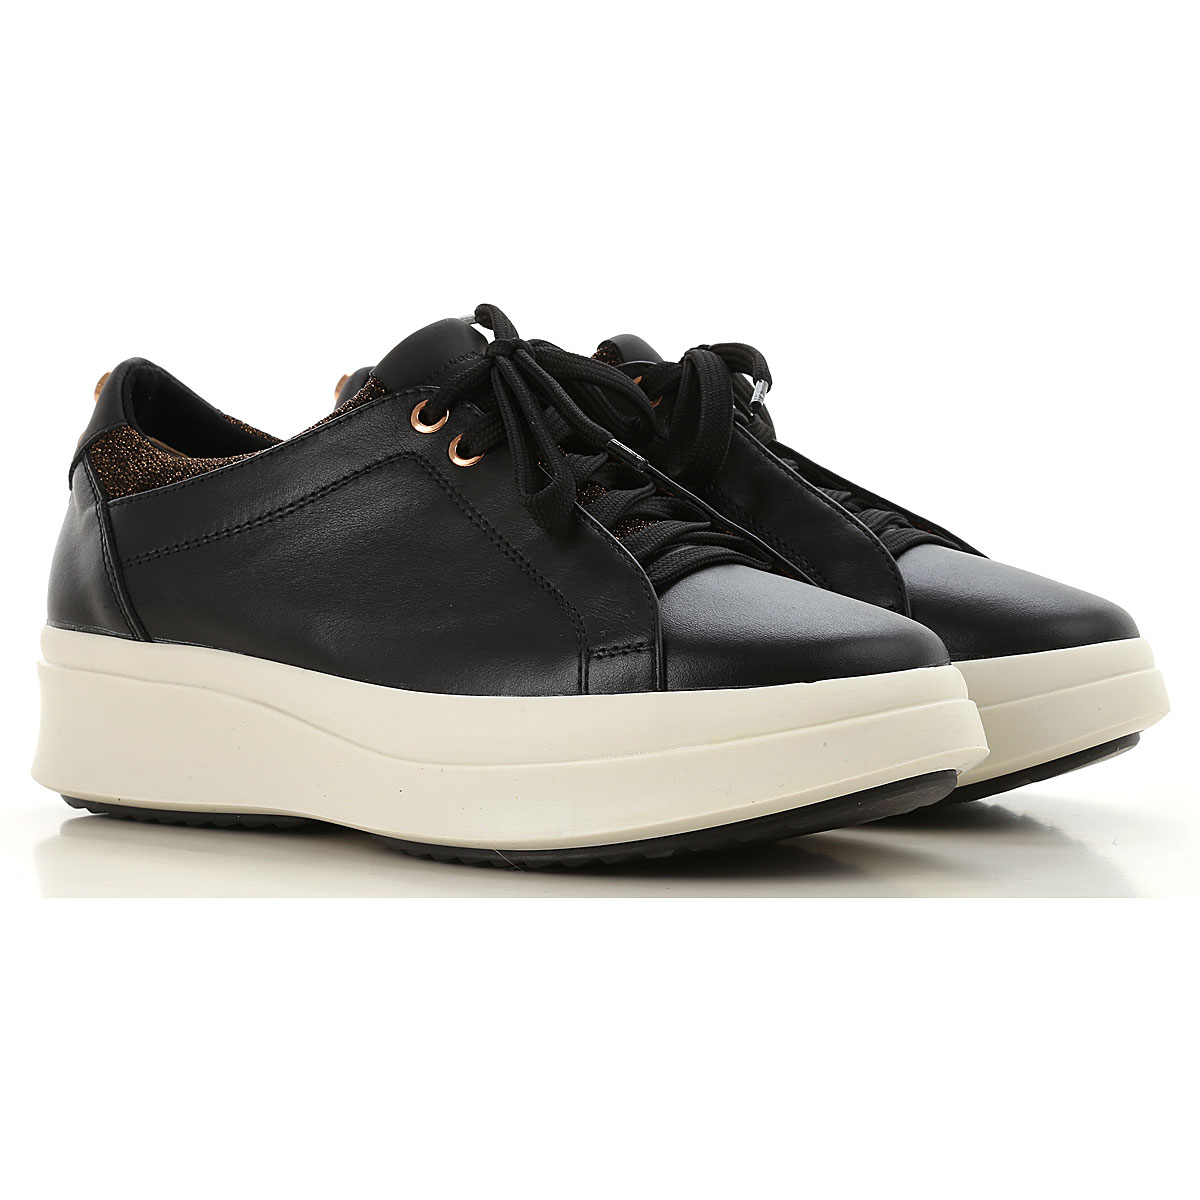 Image of Alexander Smith Sneakers for Women, Black, Leather, 2017, 10 6 7 8